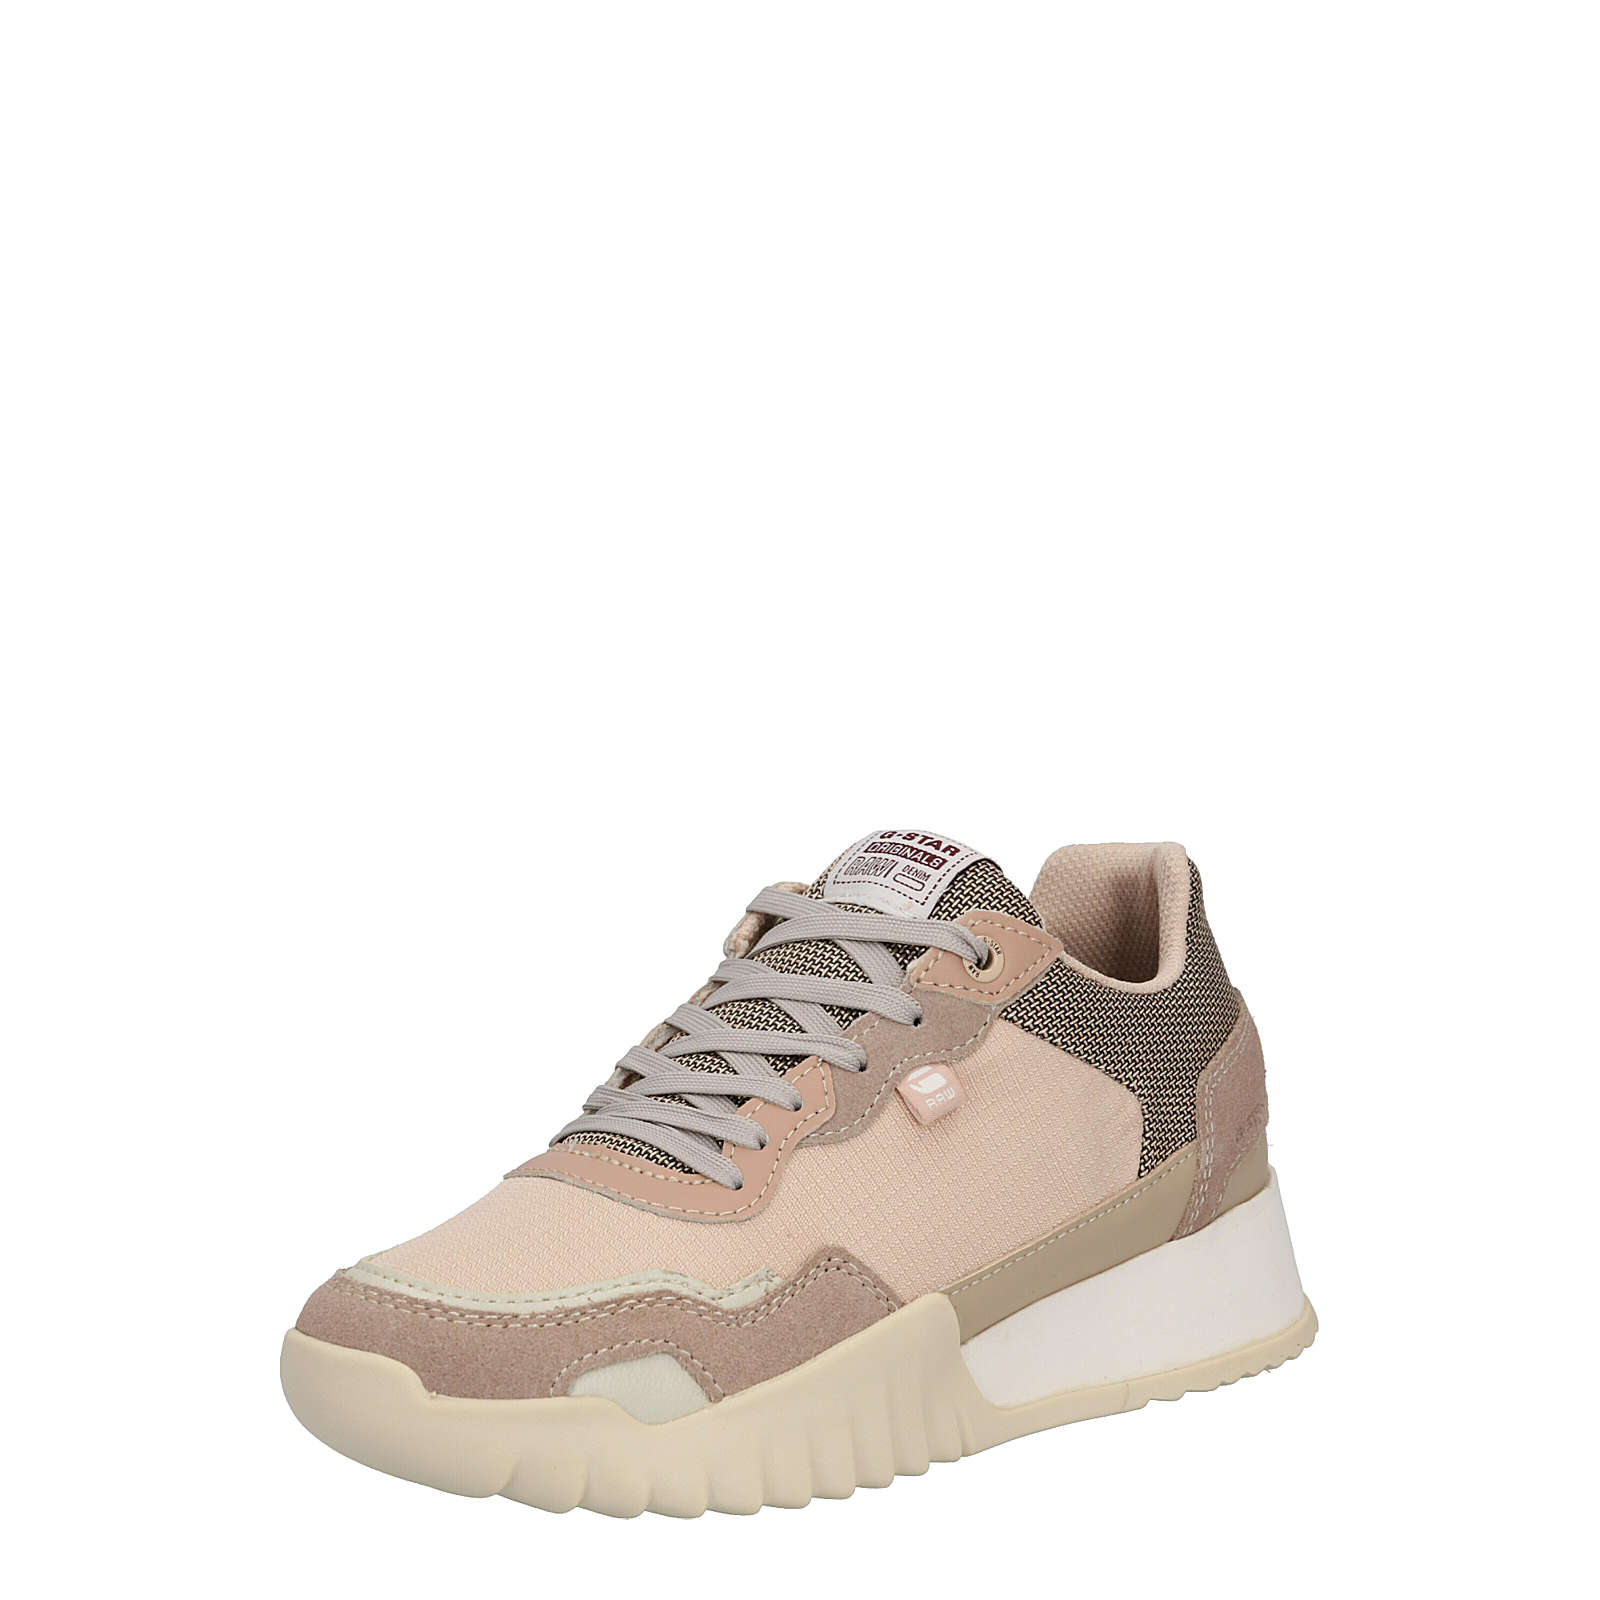 G-Star RAW sneaker low rovic 2 Sneakers Low beige Damen Gr. 36